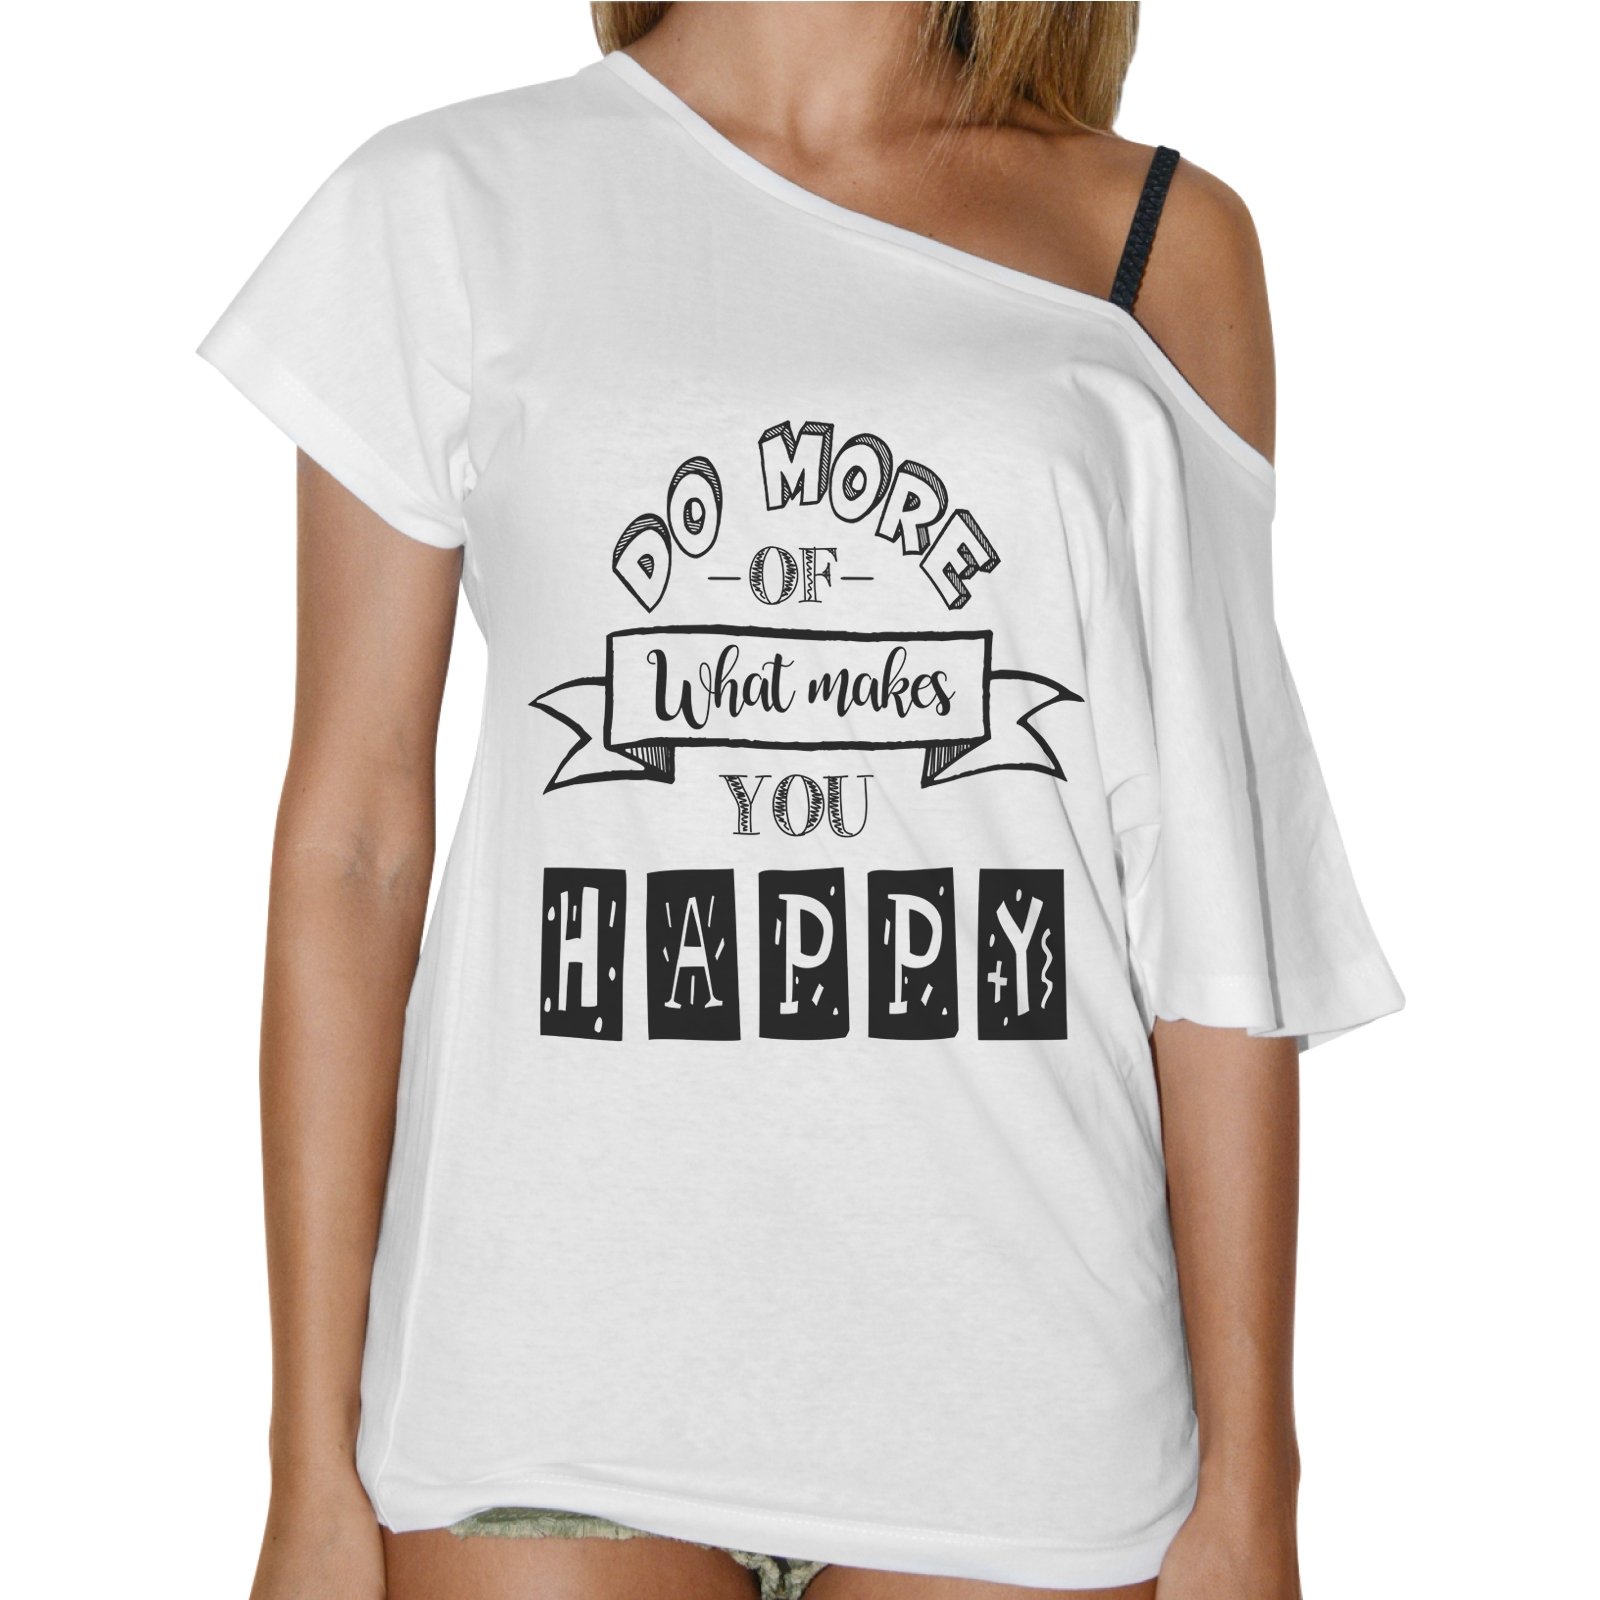 T-Shirt Donna Collo Barca HAPPY